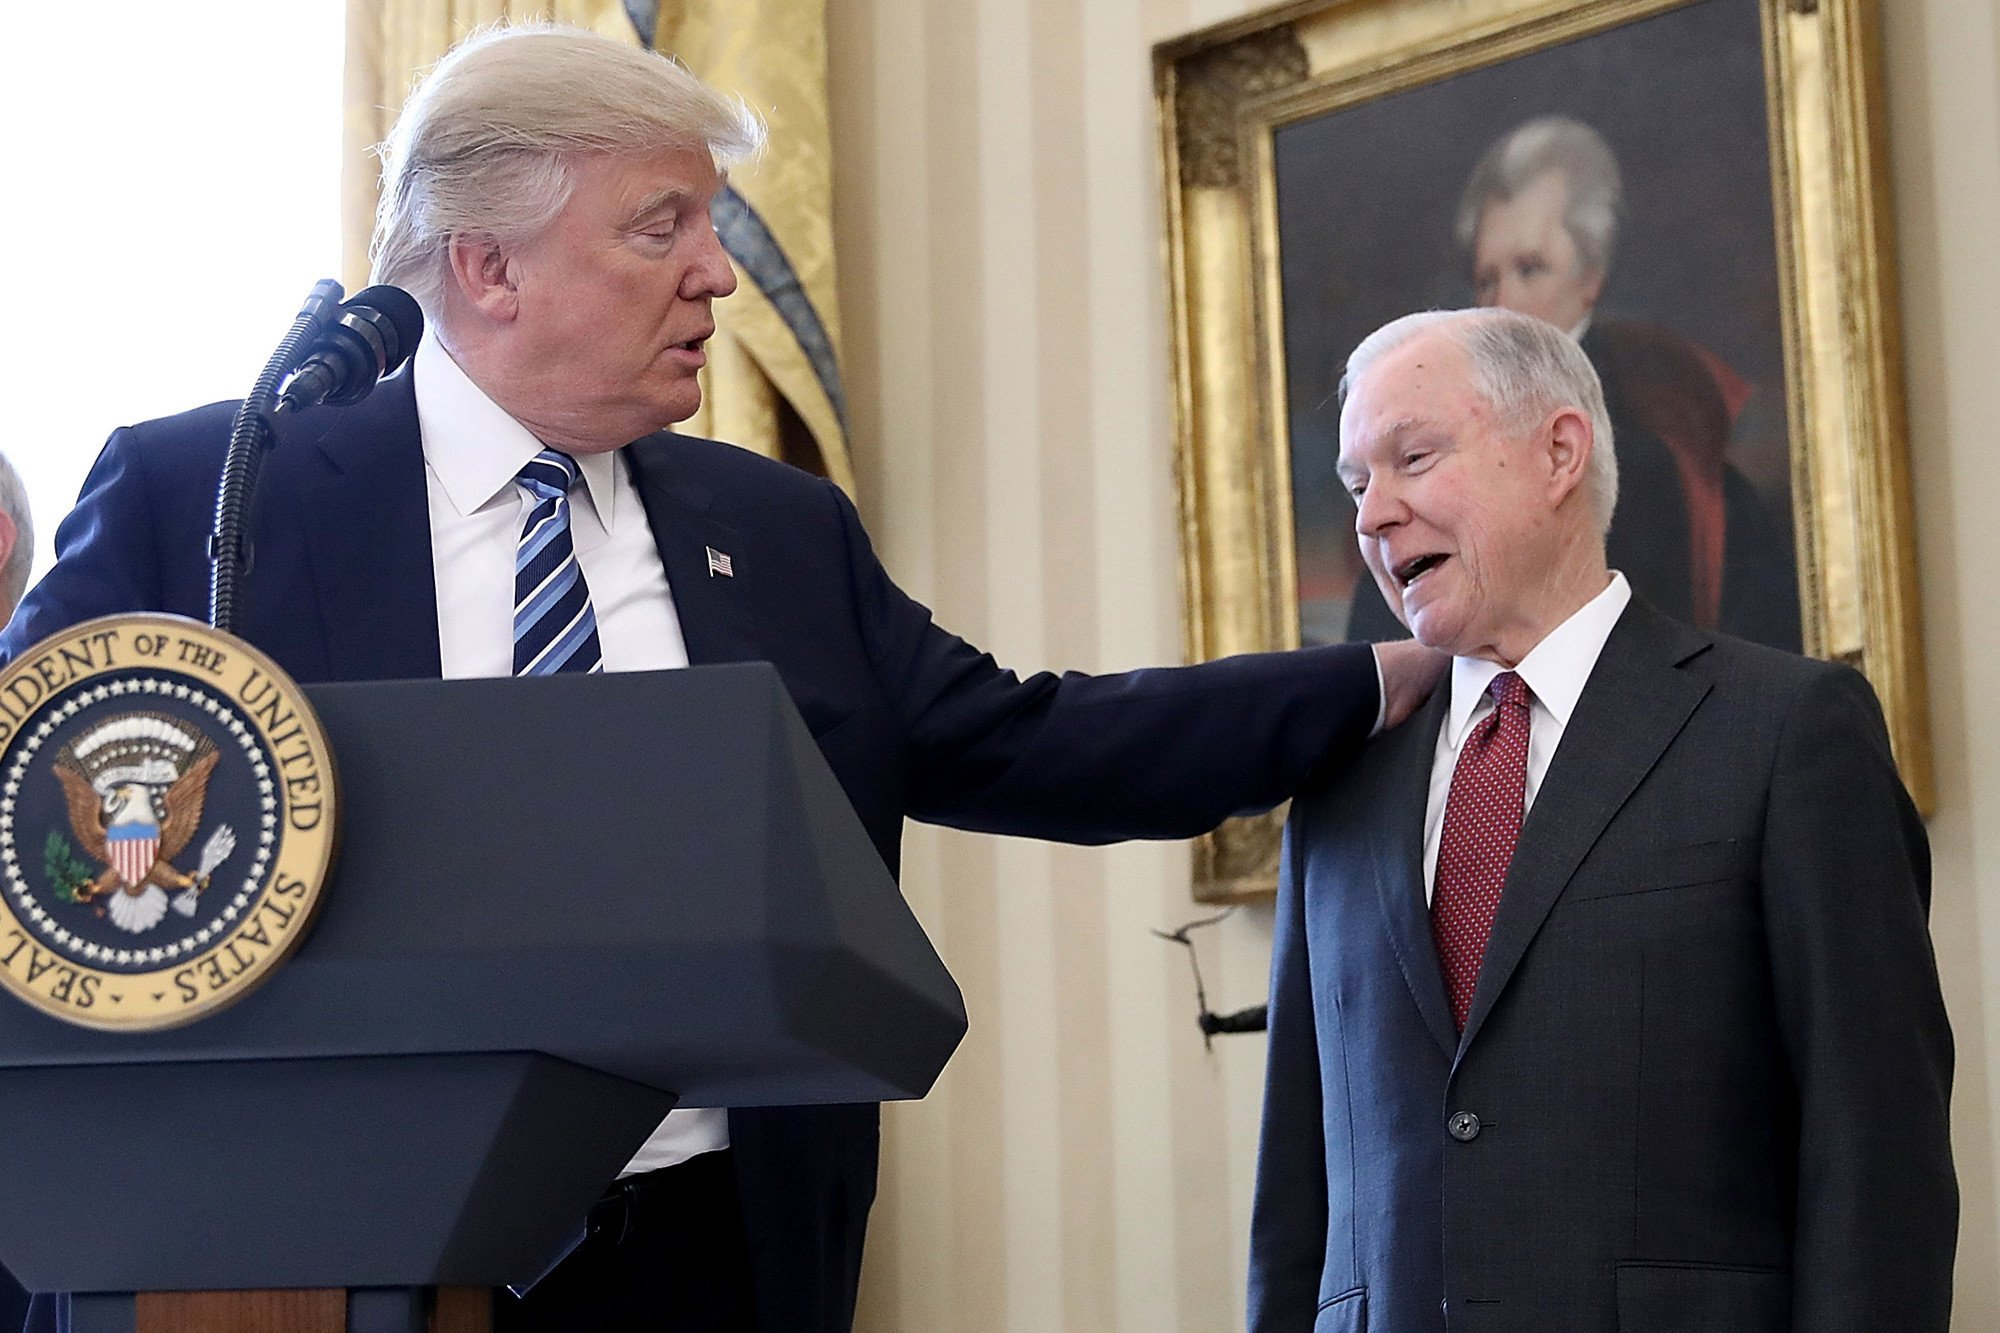 Sessions wants to get back on Trump's good side